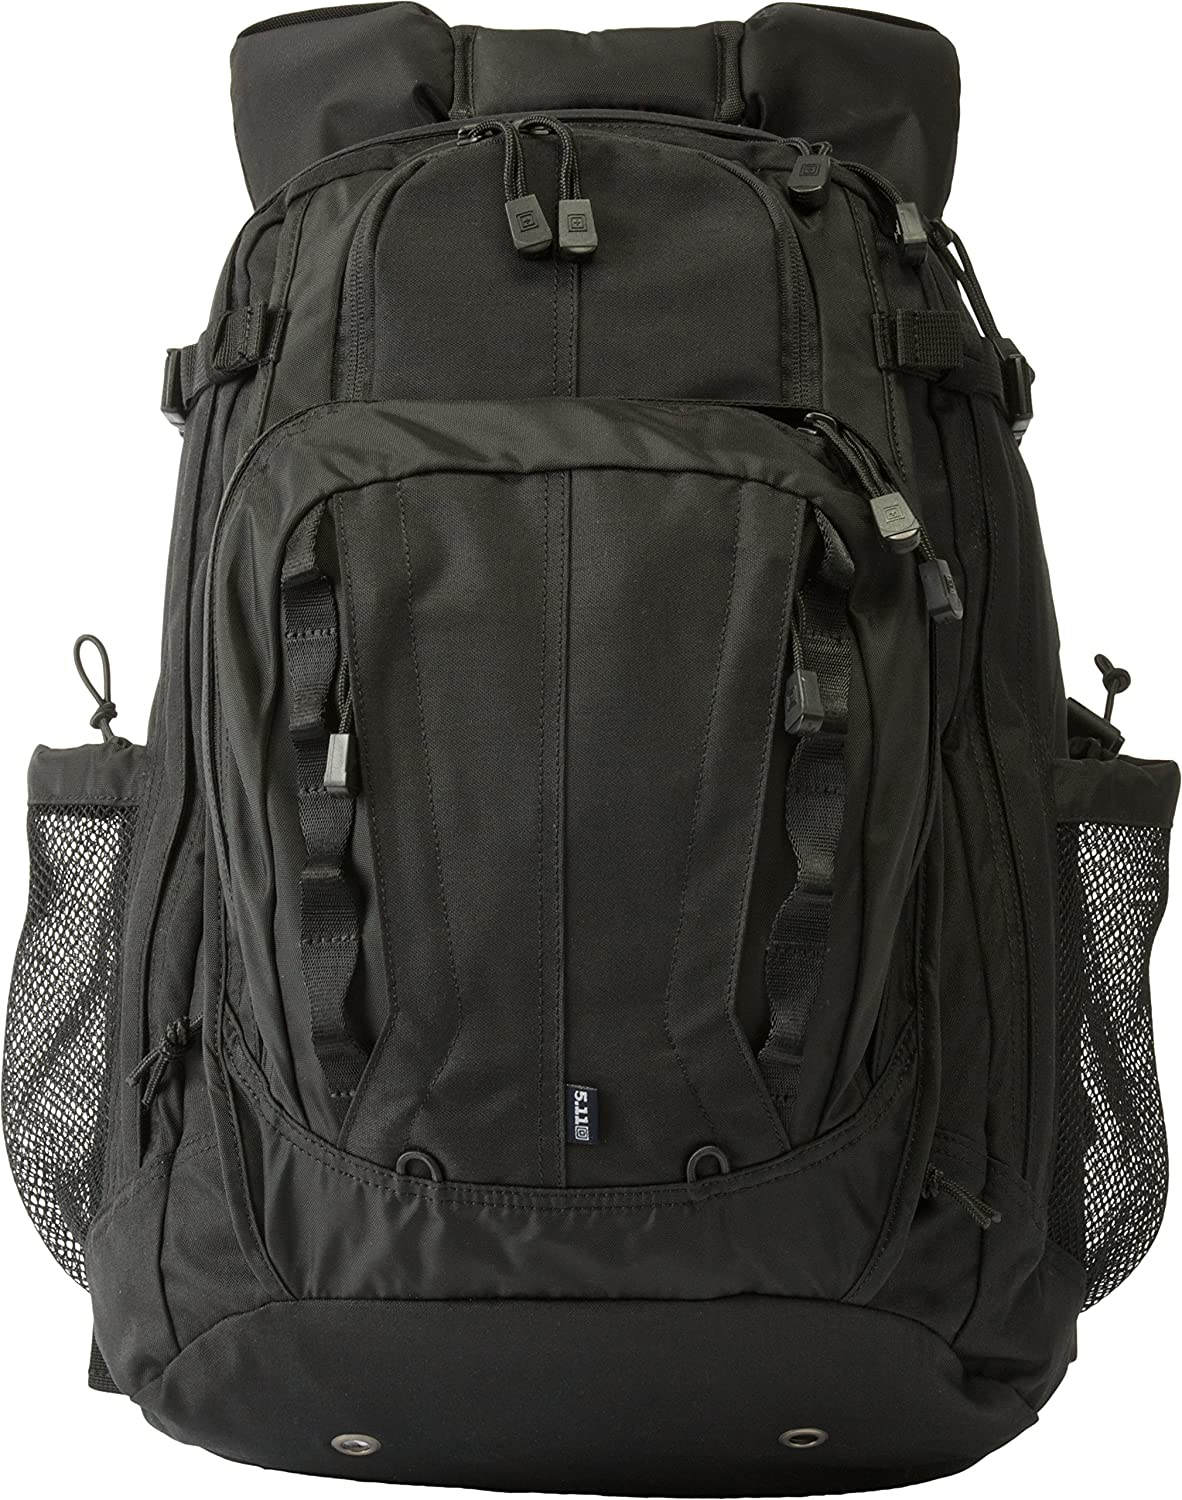 ccw backpack